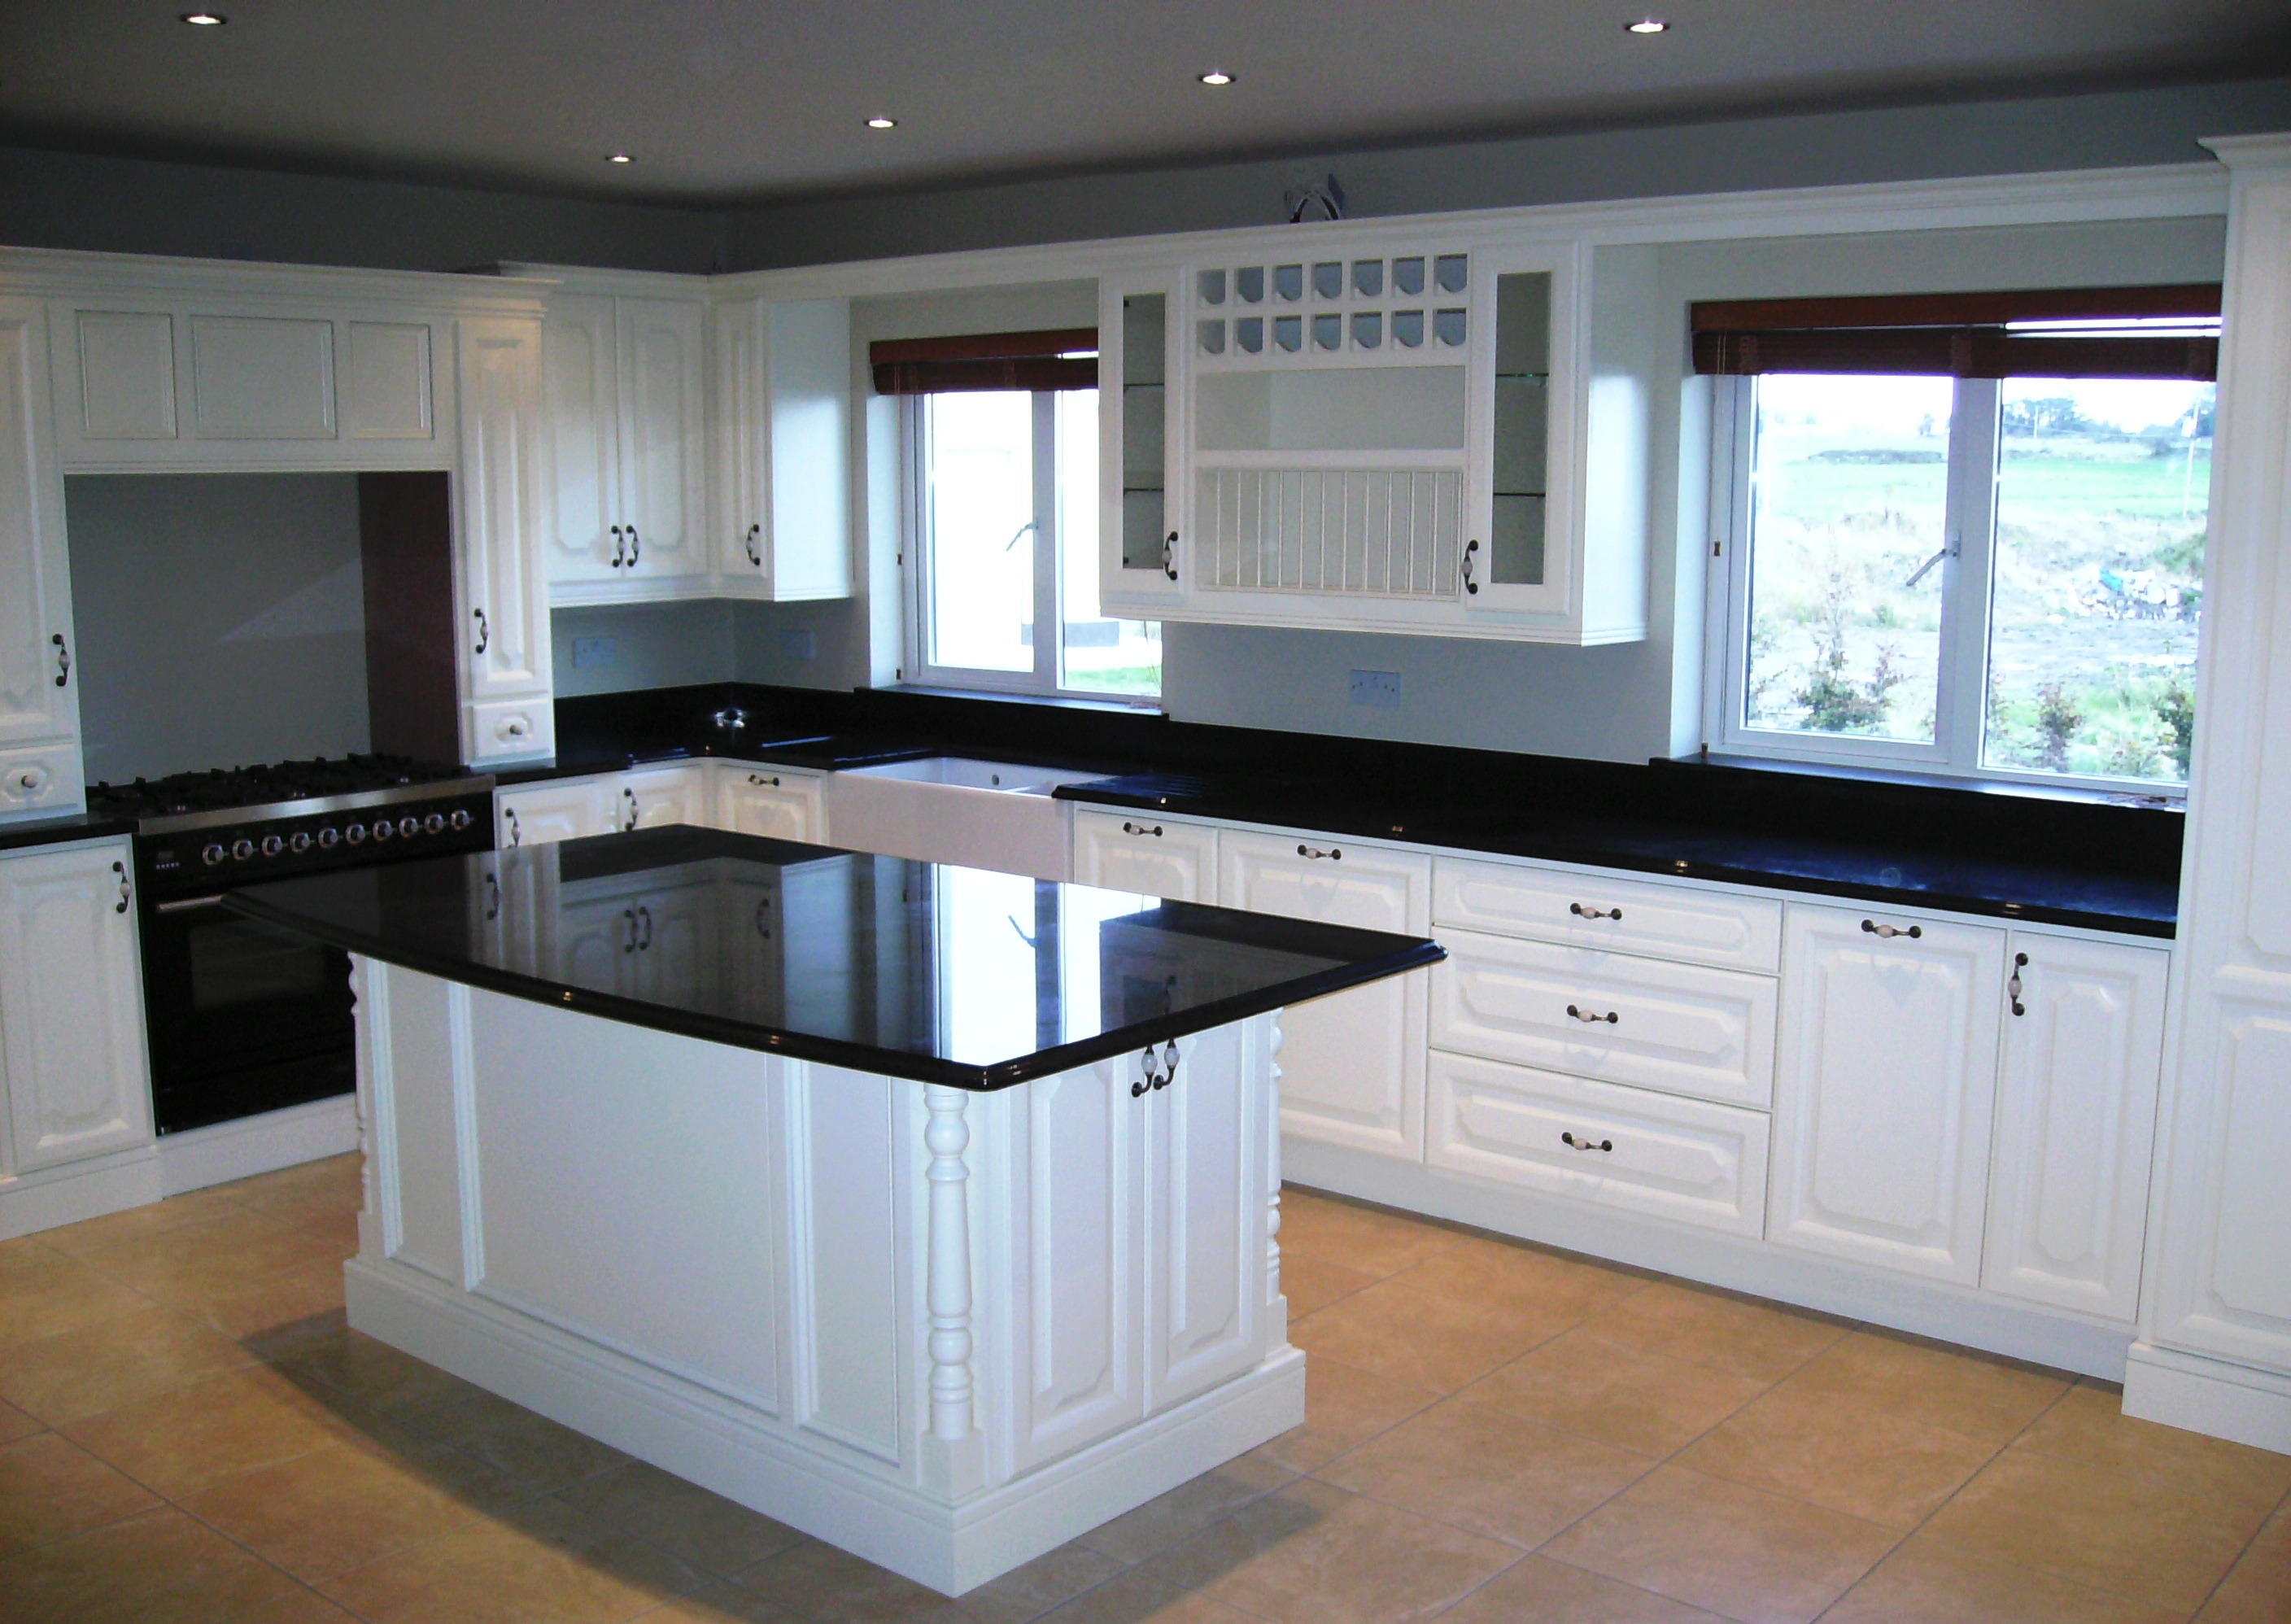 Kitchen Design Cabinets Examples Thought Forms Ireland Kitchens